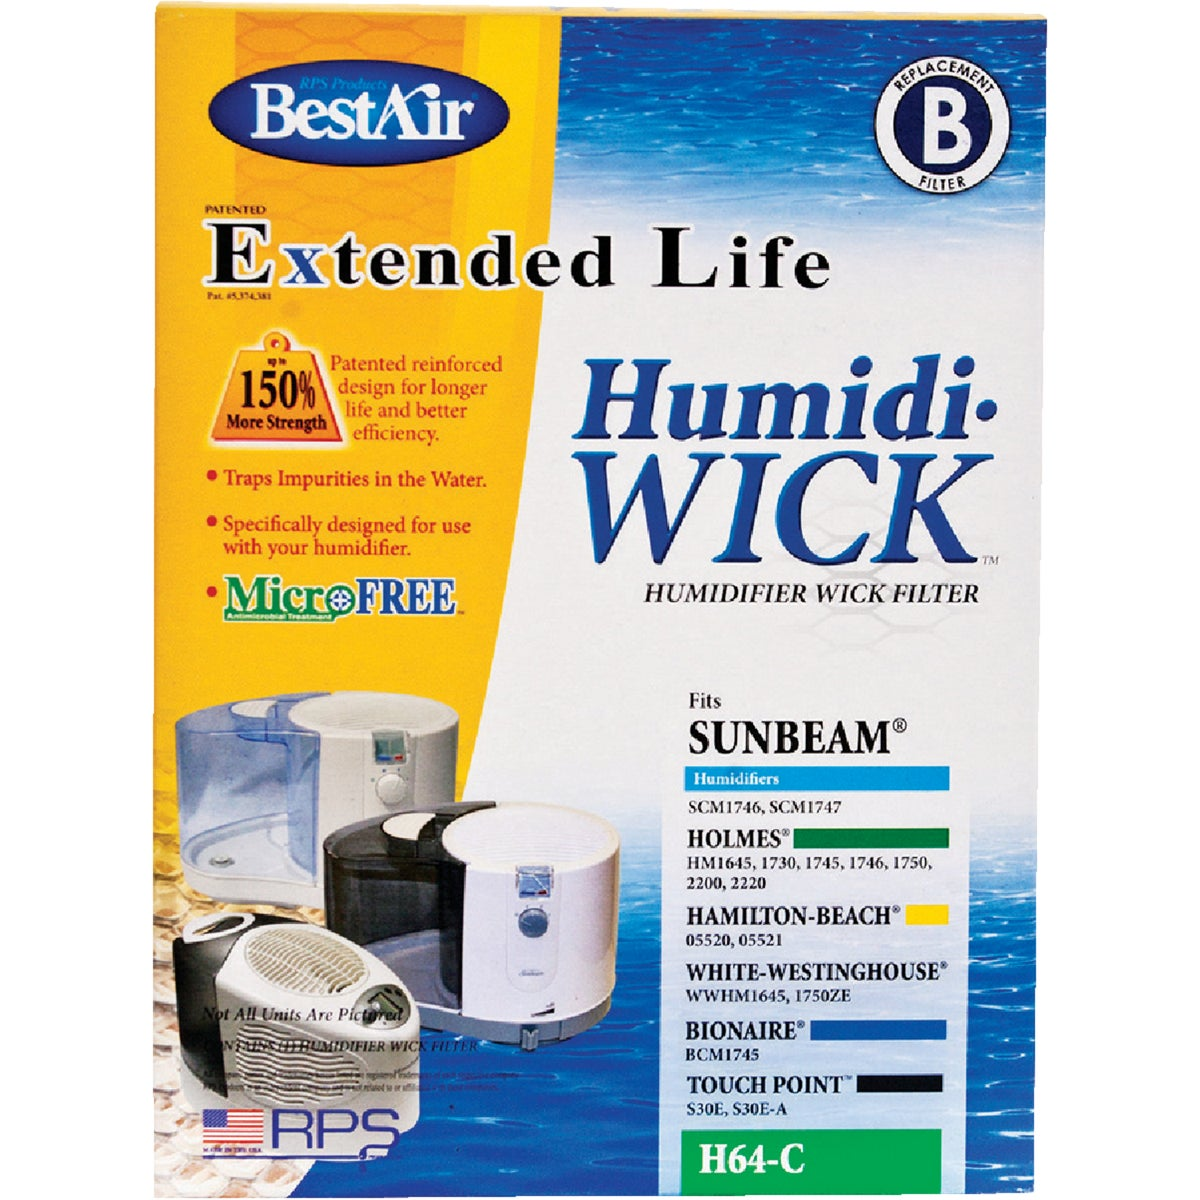 HUMIDIFIER WICK FILTER - H64-C by Rps Products Inc